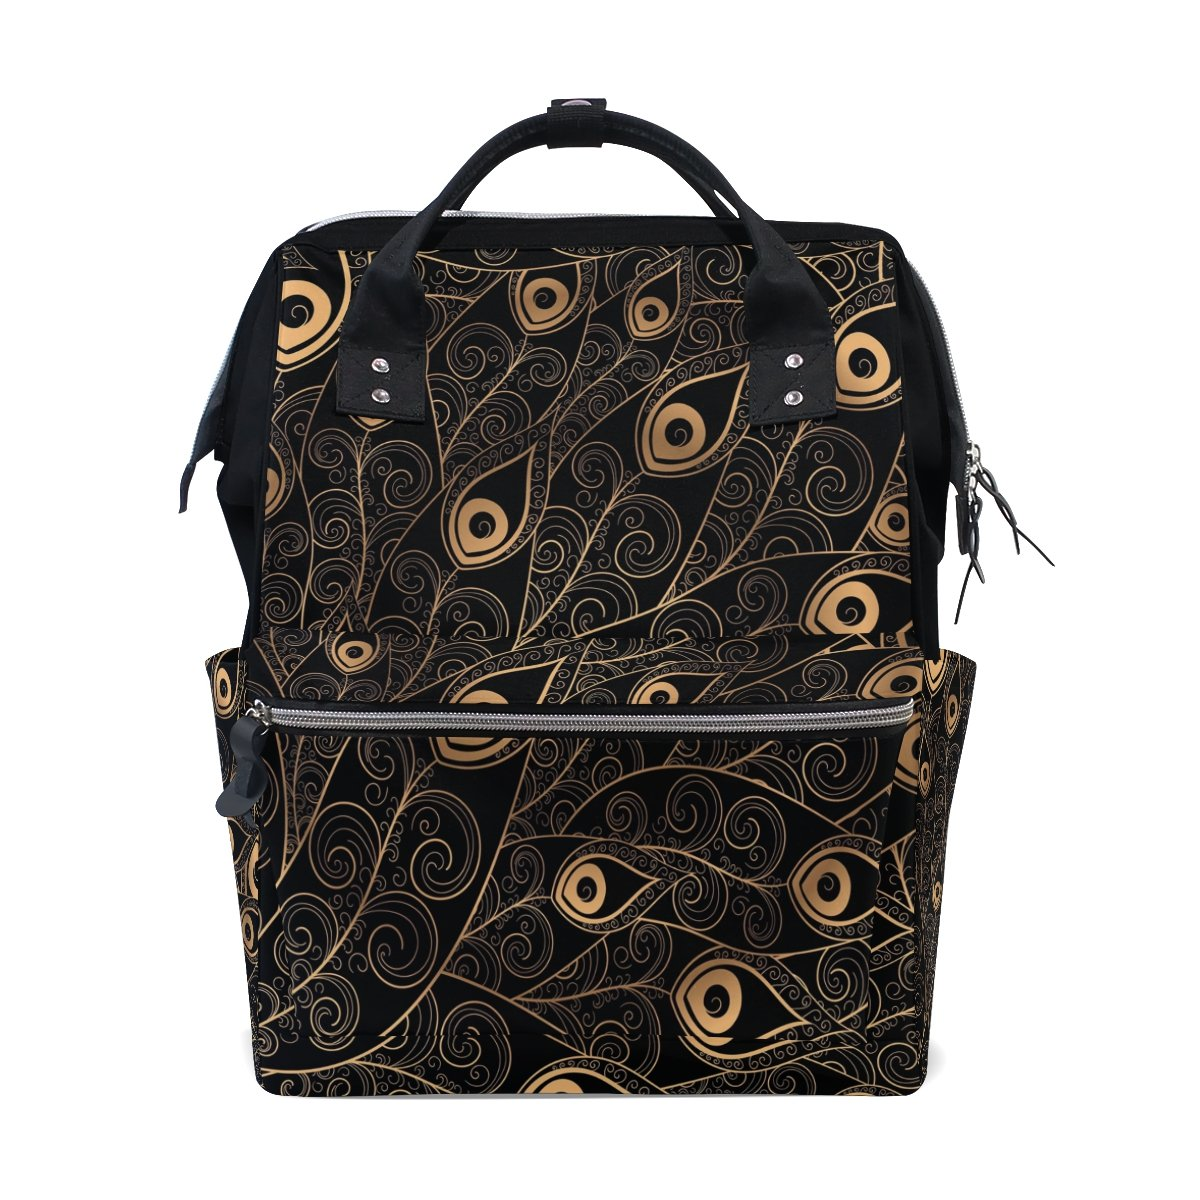 WOZO Gold Black Feather Multi-function Diaper Bags Backpack Travel Bag by WOZO